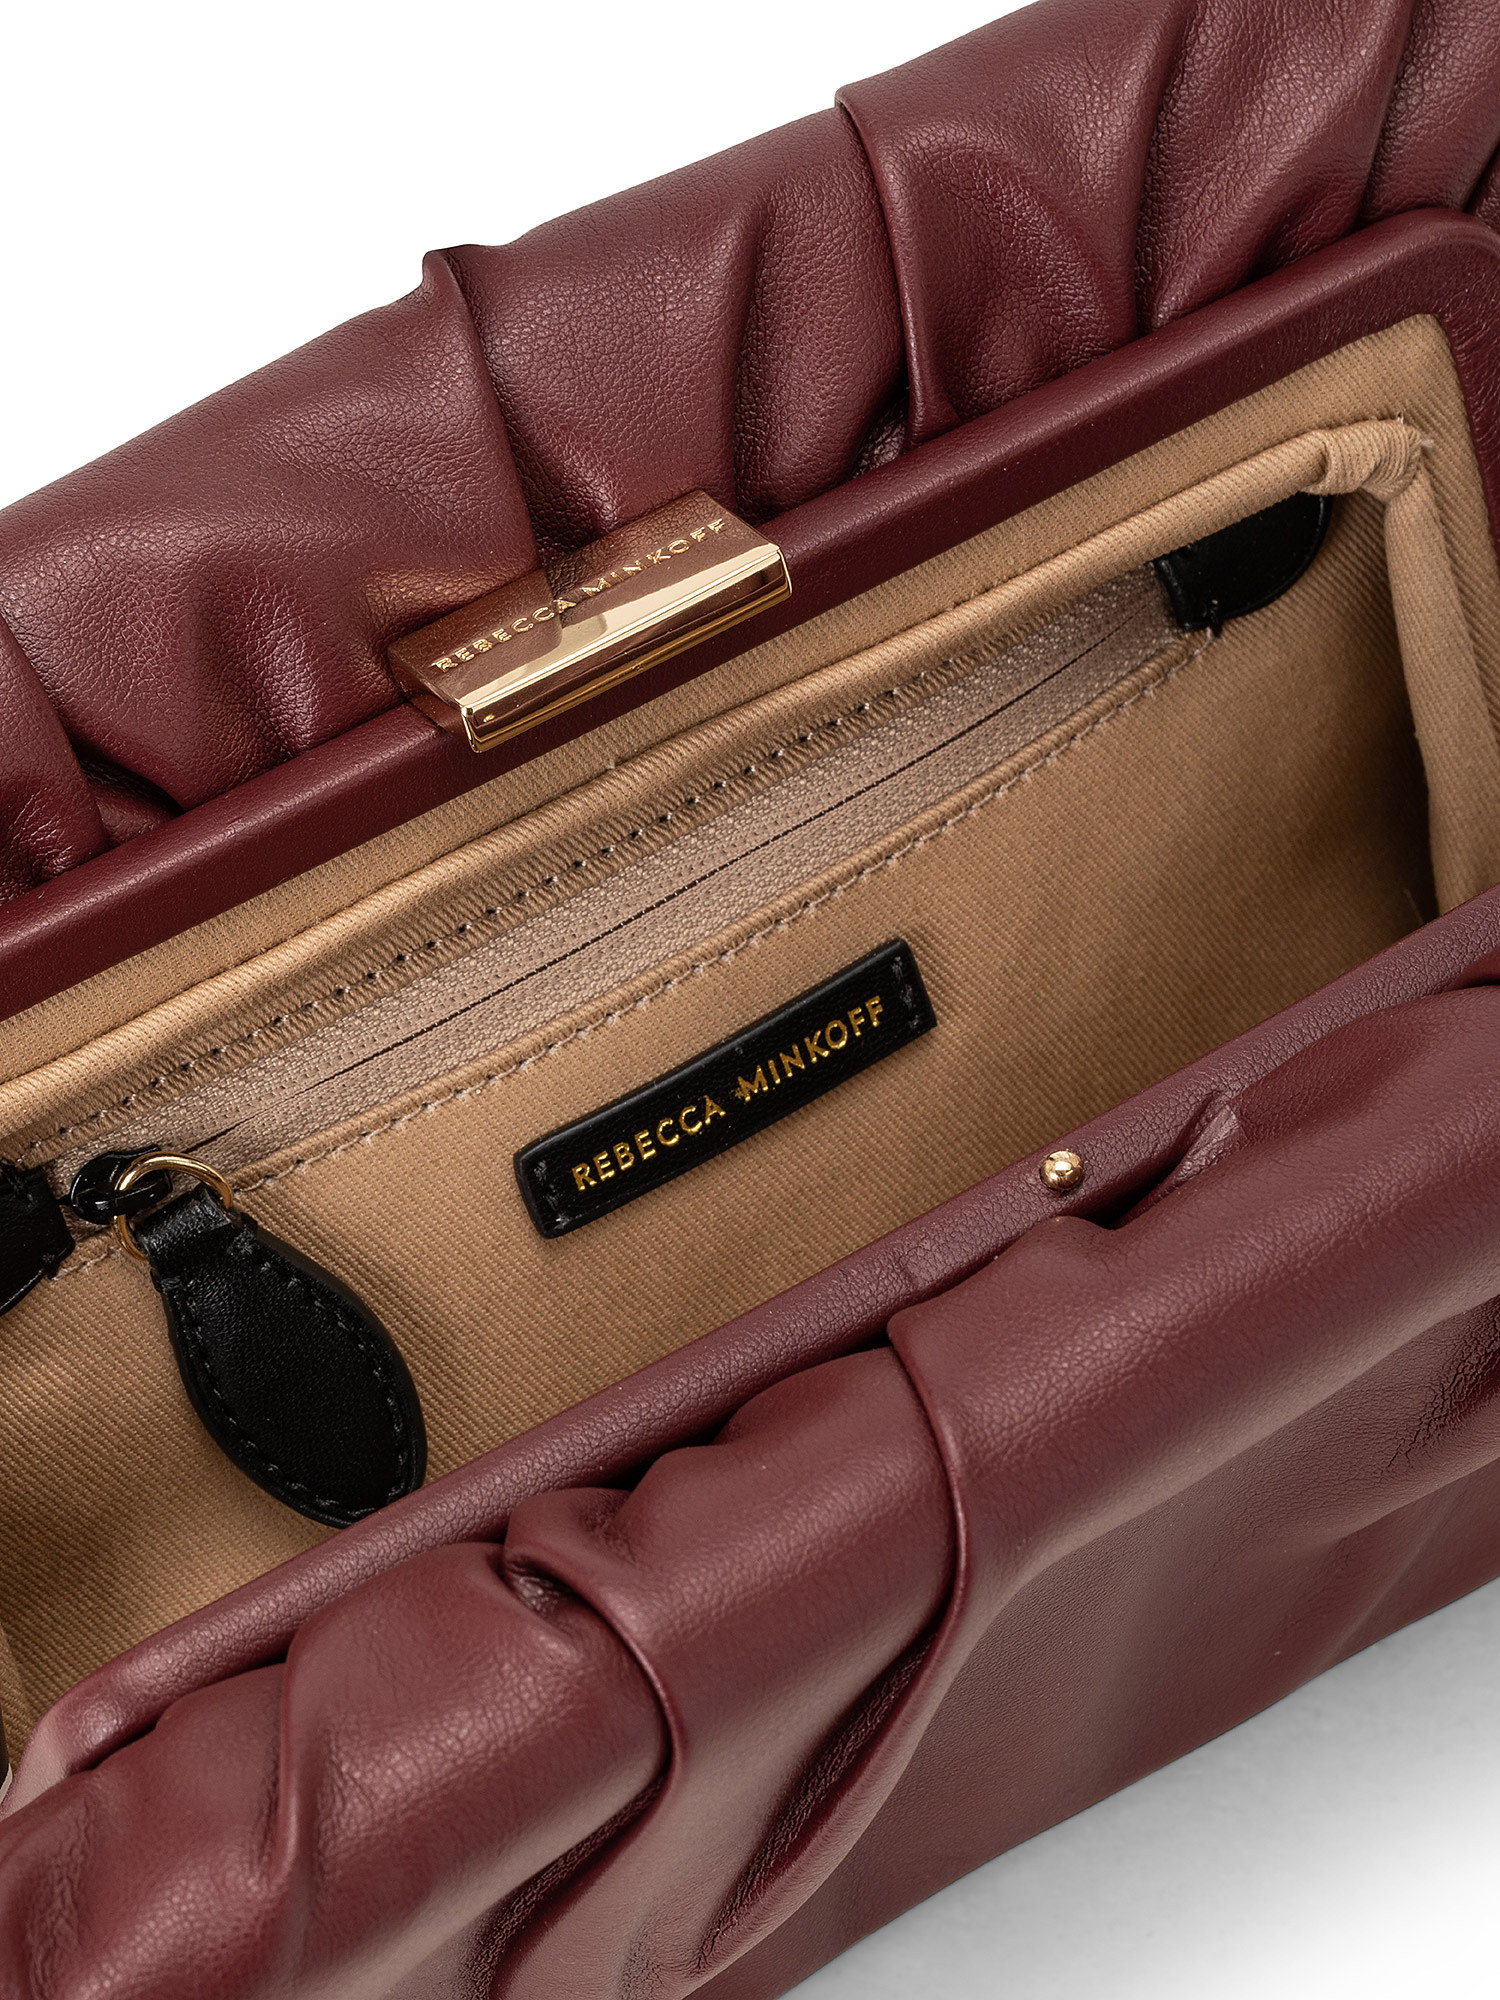 Ruched Frame Clutch, Rosso ciliegia, large image number 2